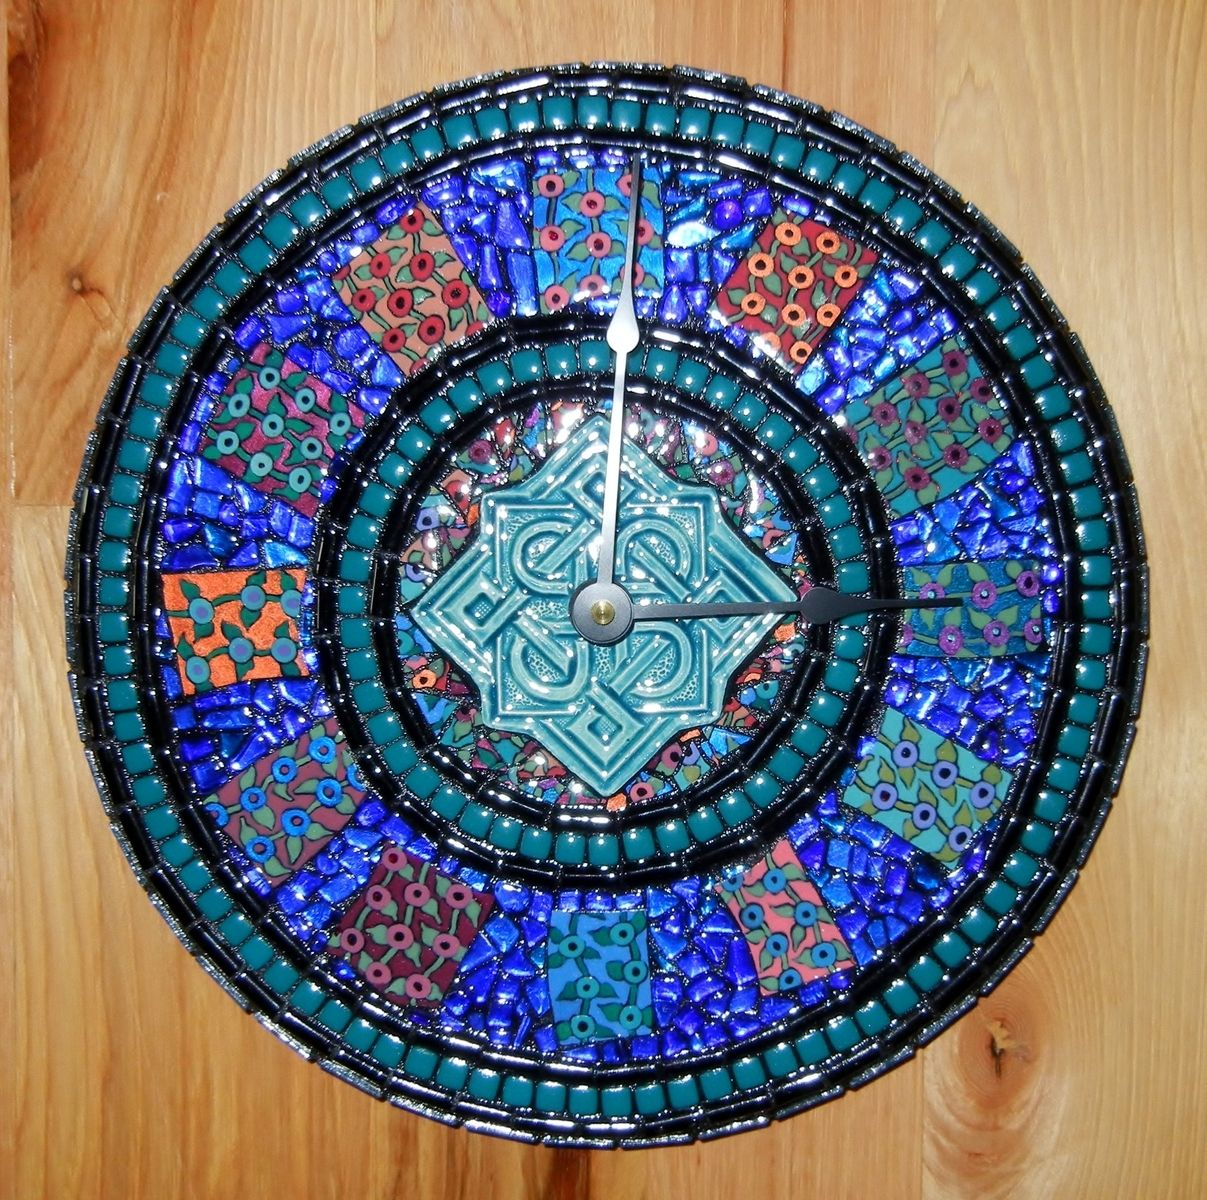 Hand Made Turquoise Black Amp Blue Celtic Mosaic Clock By